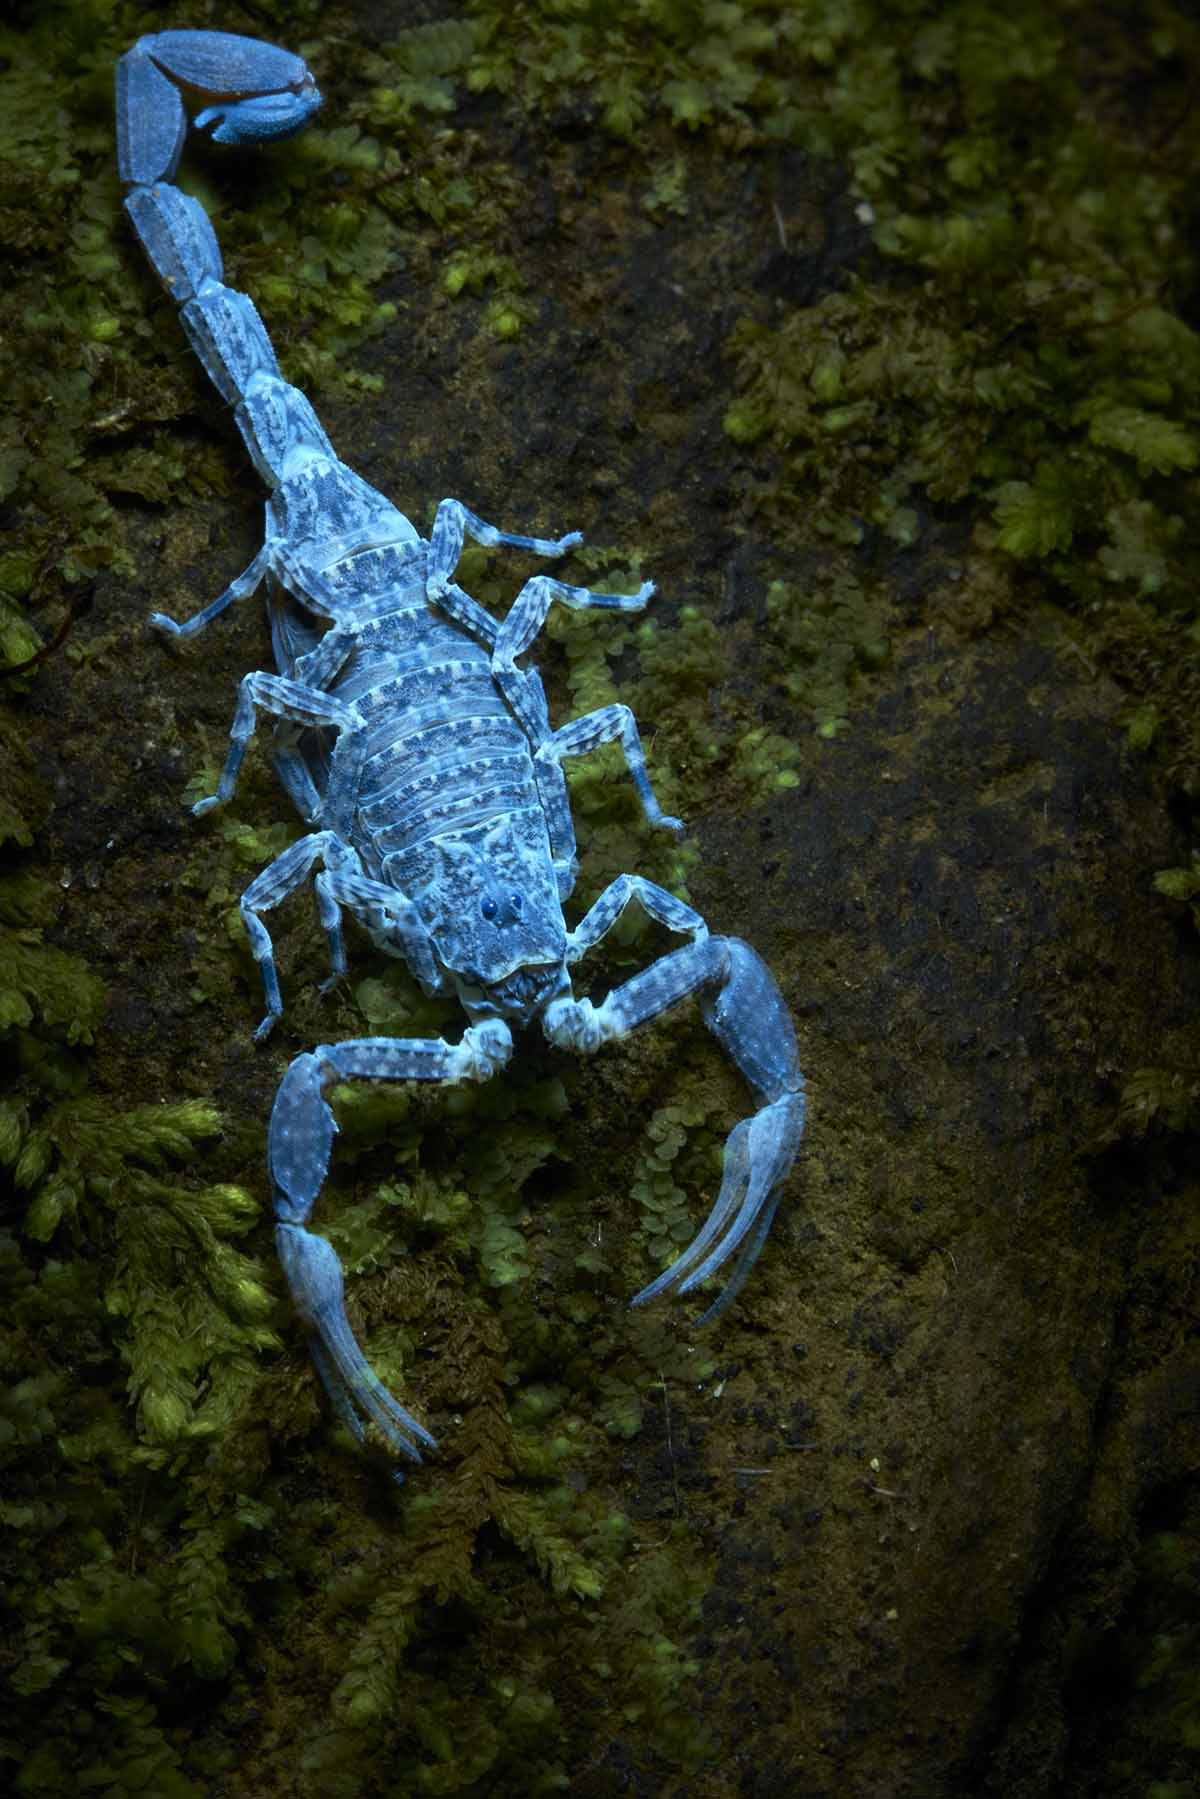 A bright blue scorpion crawling on the ground. Scorpions glow this color under ultraviolet light.